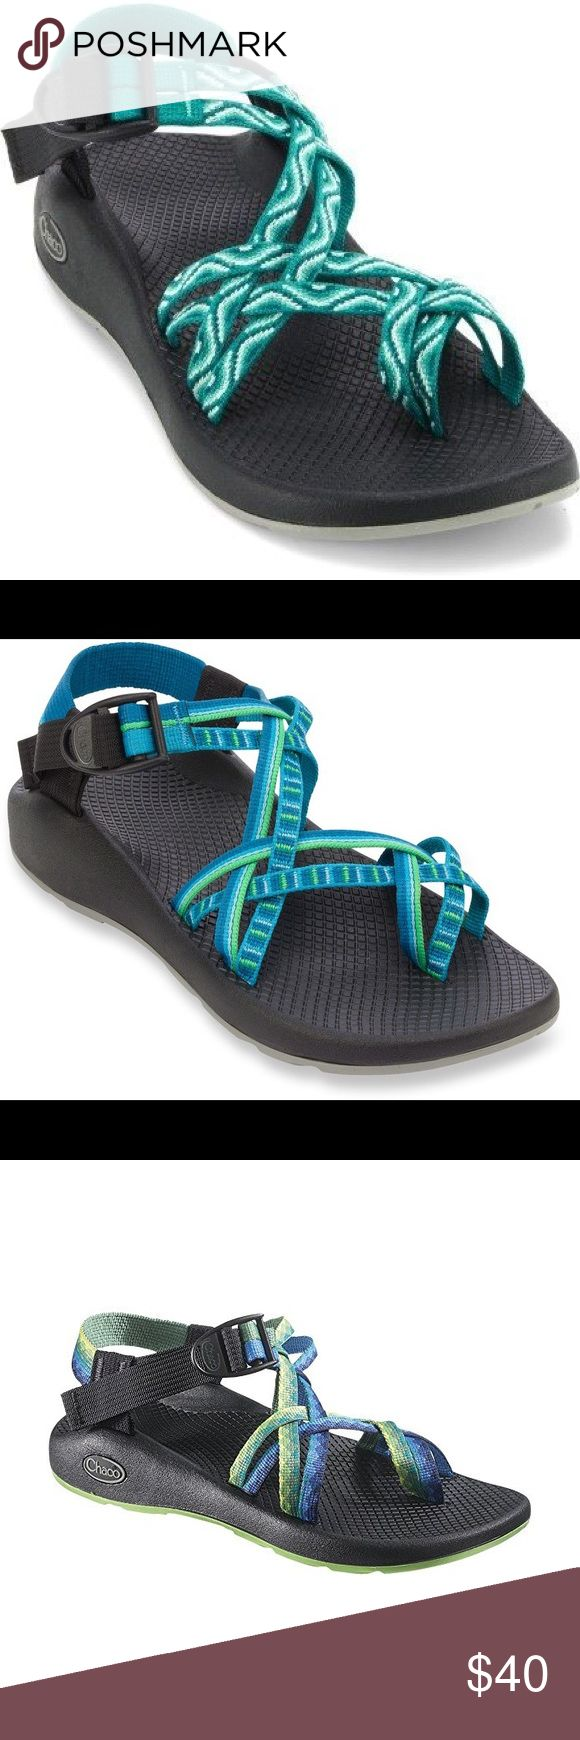 ISO TURQUOISE CHACOS Don't buy this listing!! not for sale. Let me know if anyone has these!! around $40-50 dollars. Chacos Shoes Sandals